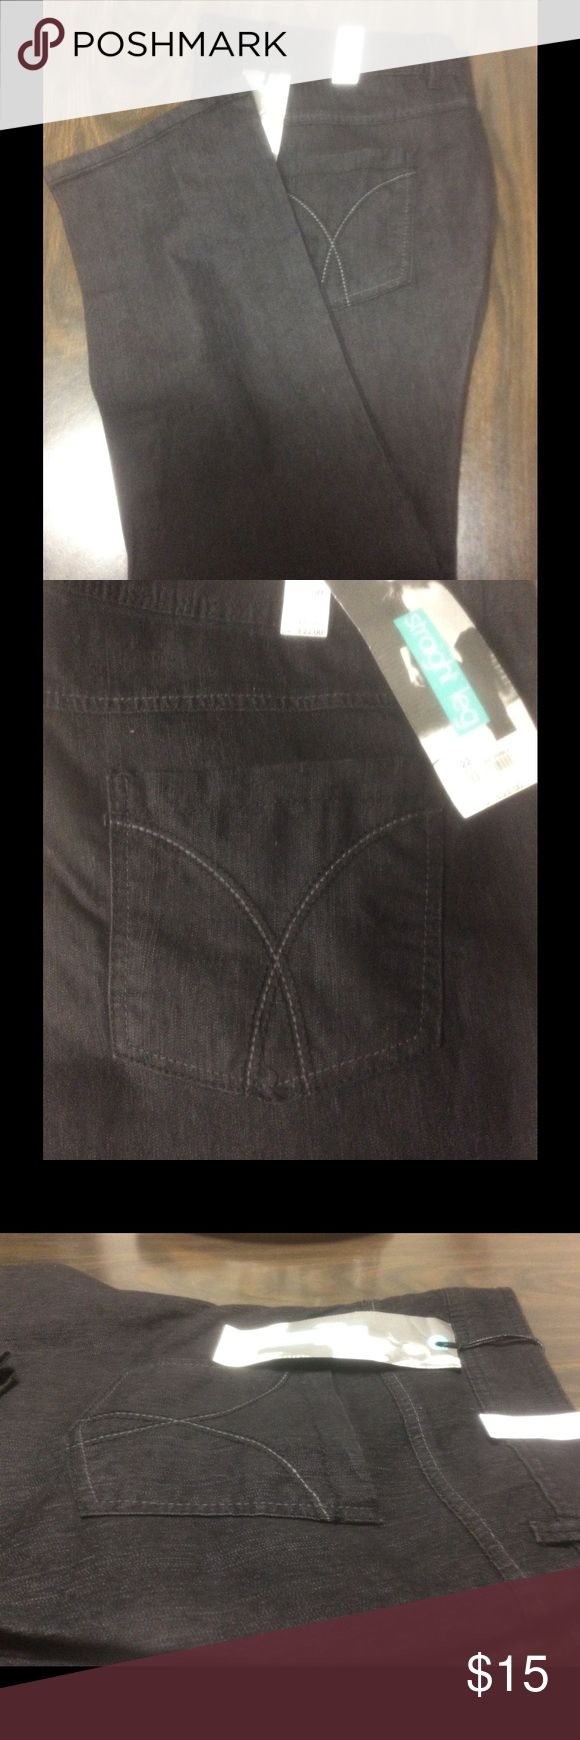 NWT plus size woman's jeans NWT women's plus size straight jeans. My niece purchased them in England. They're a U.K. Size 22 which is a US SIZE 18 they are good quality jeans, they have a slight stretch to them. They cost her £22 which is 27 USD.    Wear them with a blazer and make them look glam with a fierce  shoe. Jeans Straight Leg